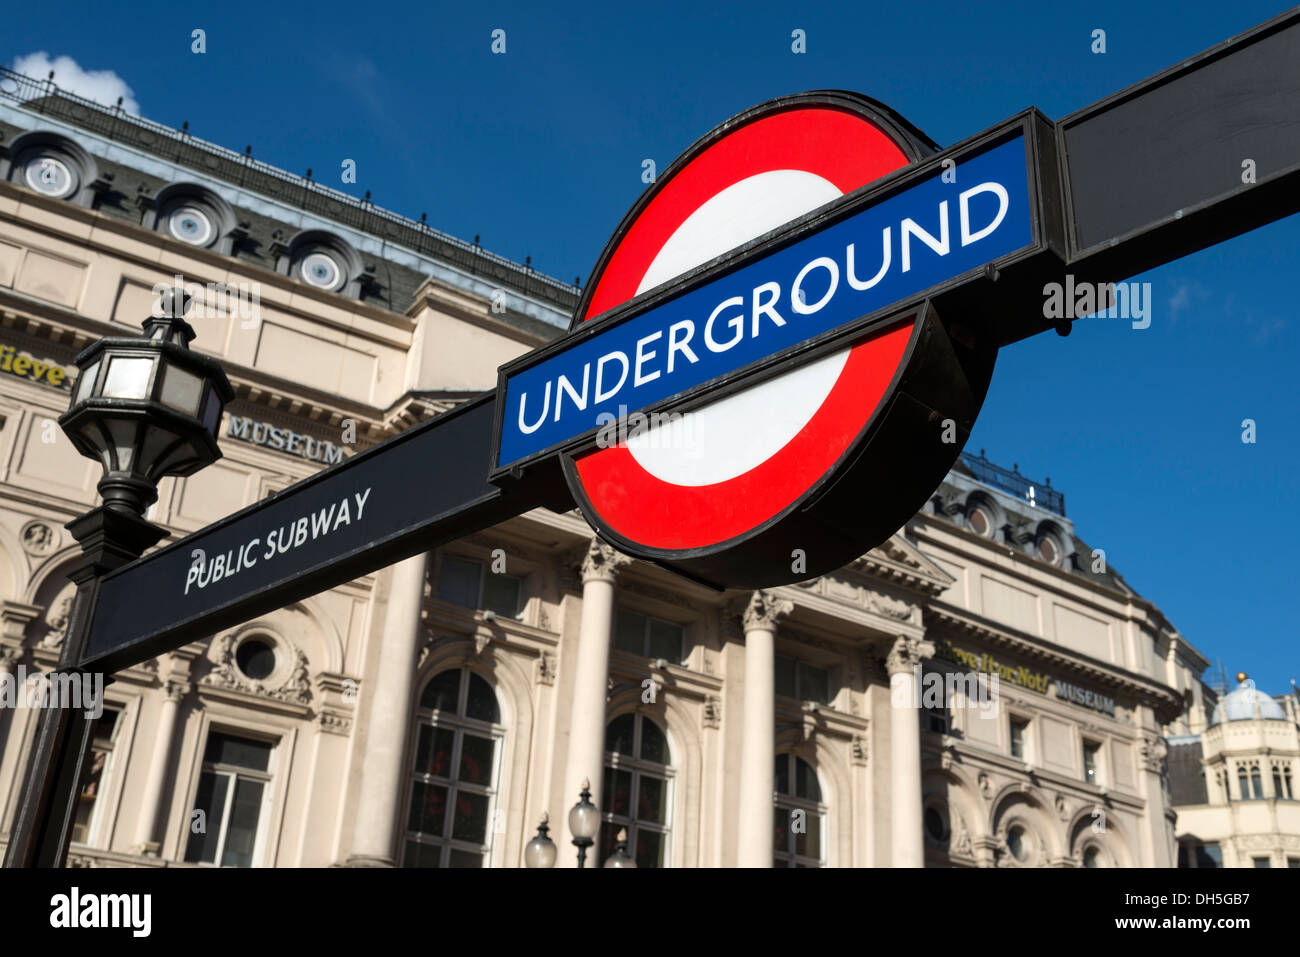 London Underground sign at Piccadilly Circus, England, UK - Stock Image